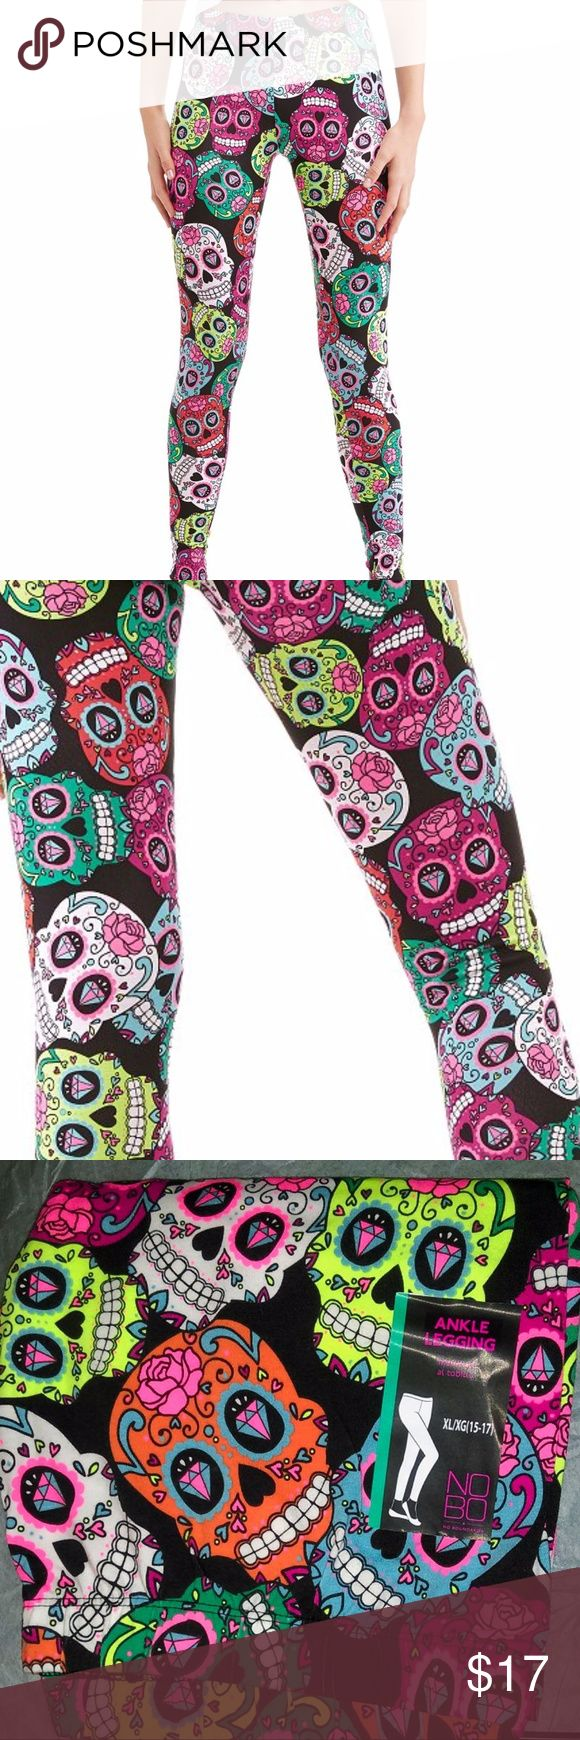 "NEW~Sugar Skulls~Day Of The Dead~Leggings~L 11-13 I love these leggings! They're so colorful. Made of 95% Cotton, 5% Spandex, so there's lots of stretch. Colors are black background with multi bright colors of pink, fuchsia, aqua, teal, yellow and white. Beautiful combination that really works. Perfect for Halloween! I'm keeping a pair for myself and these will be my ""costume"" this year! Size L (11-13) NOBO Pants Leggings"